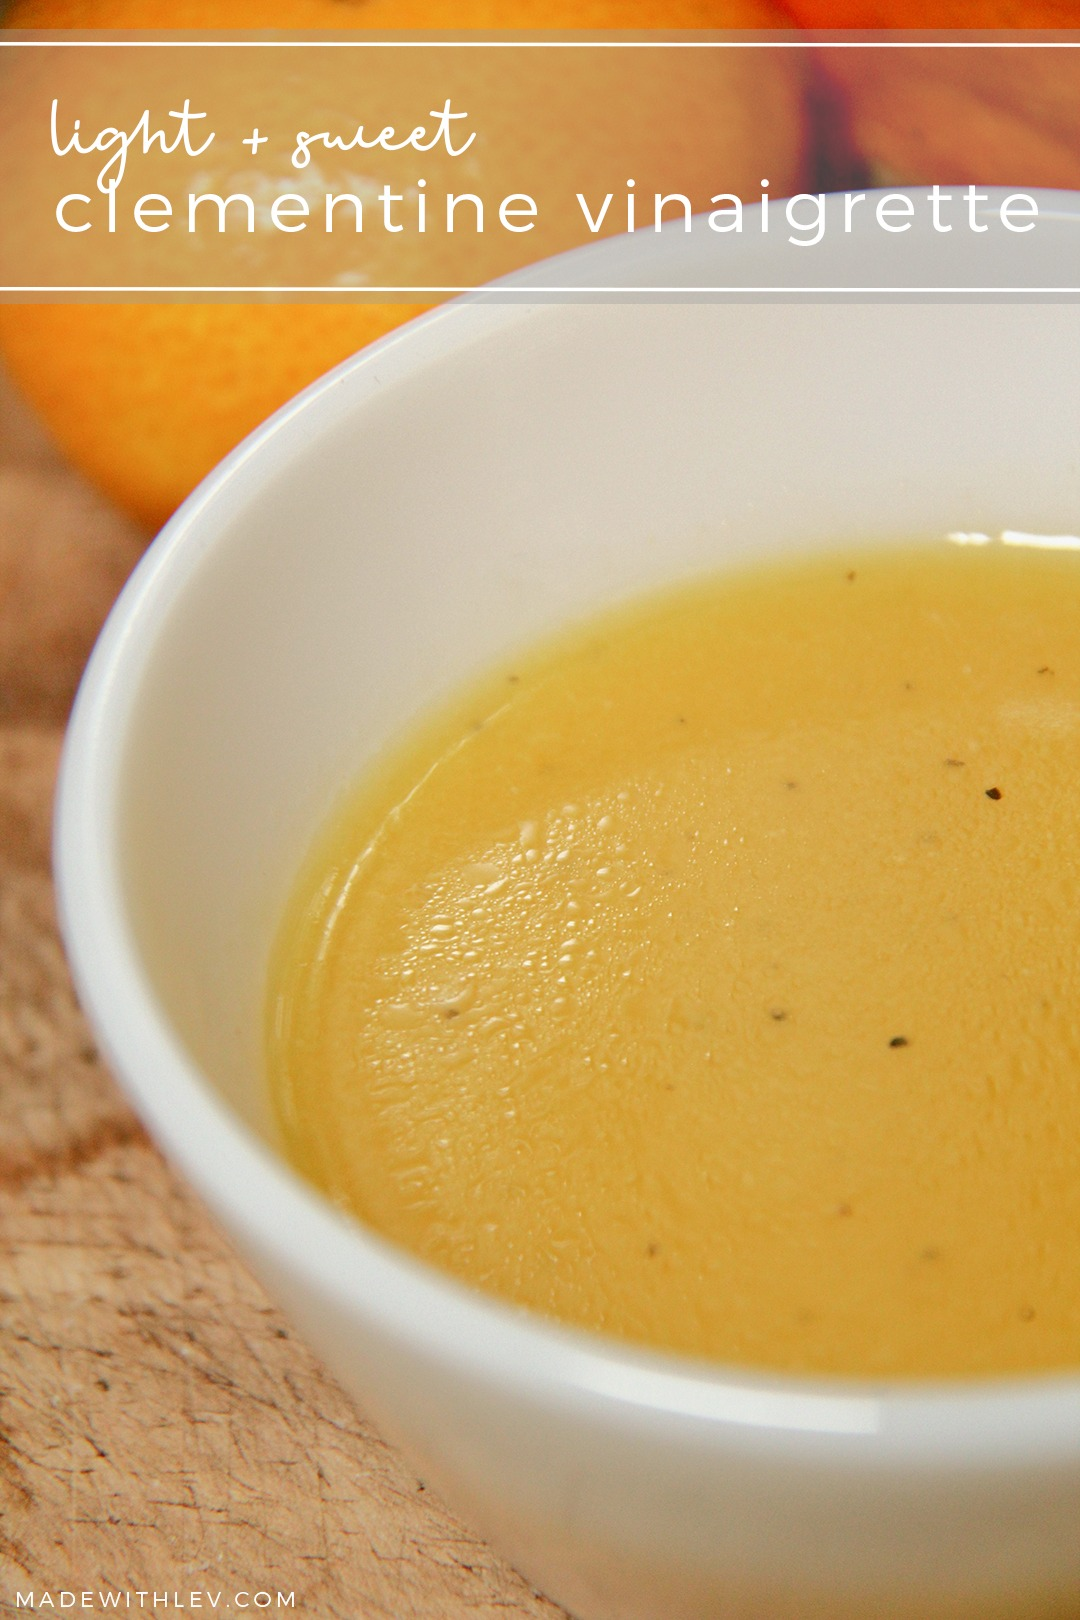 Clementine vinaigrette is a super flavorful and light salad dressing that captures the sweet yumminess of clementines beautifully.